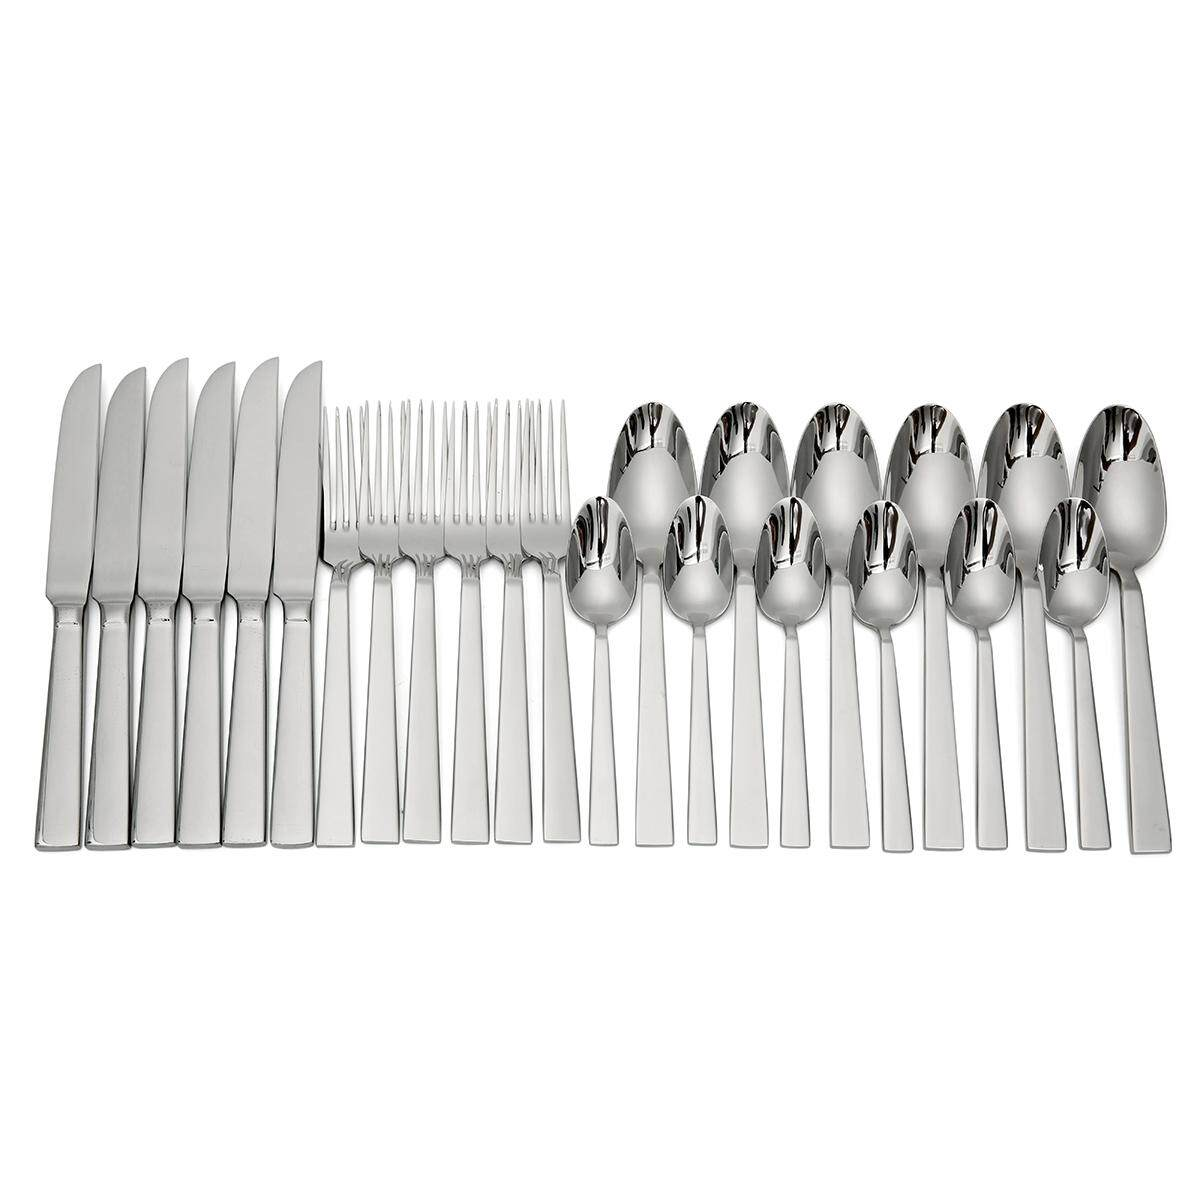 24pcs/set Stainless Steel Steak Knifes Dinner Forks Tea Spoons Flatware Set High-End Dinnerware Set New Arrival - Intl By Audew.